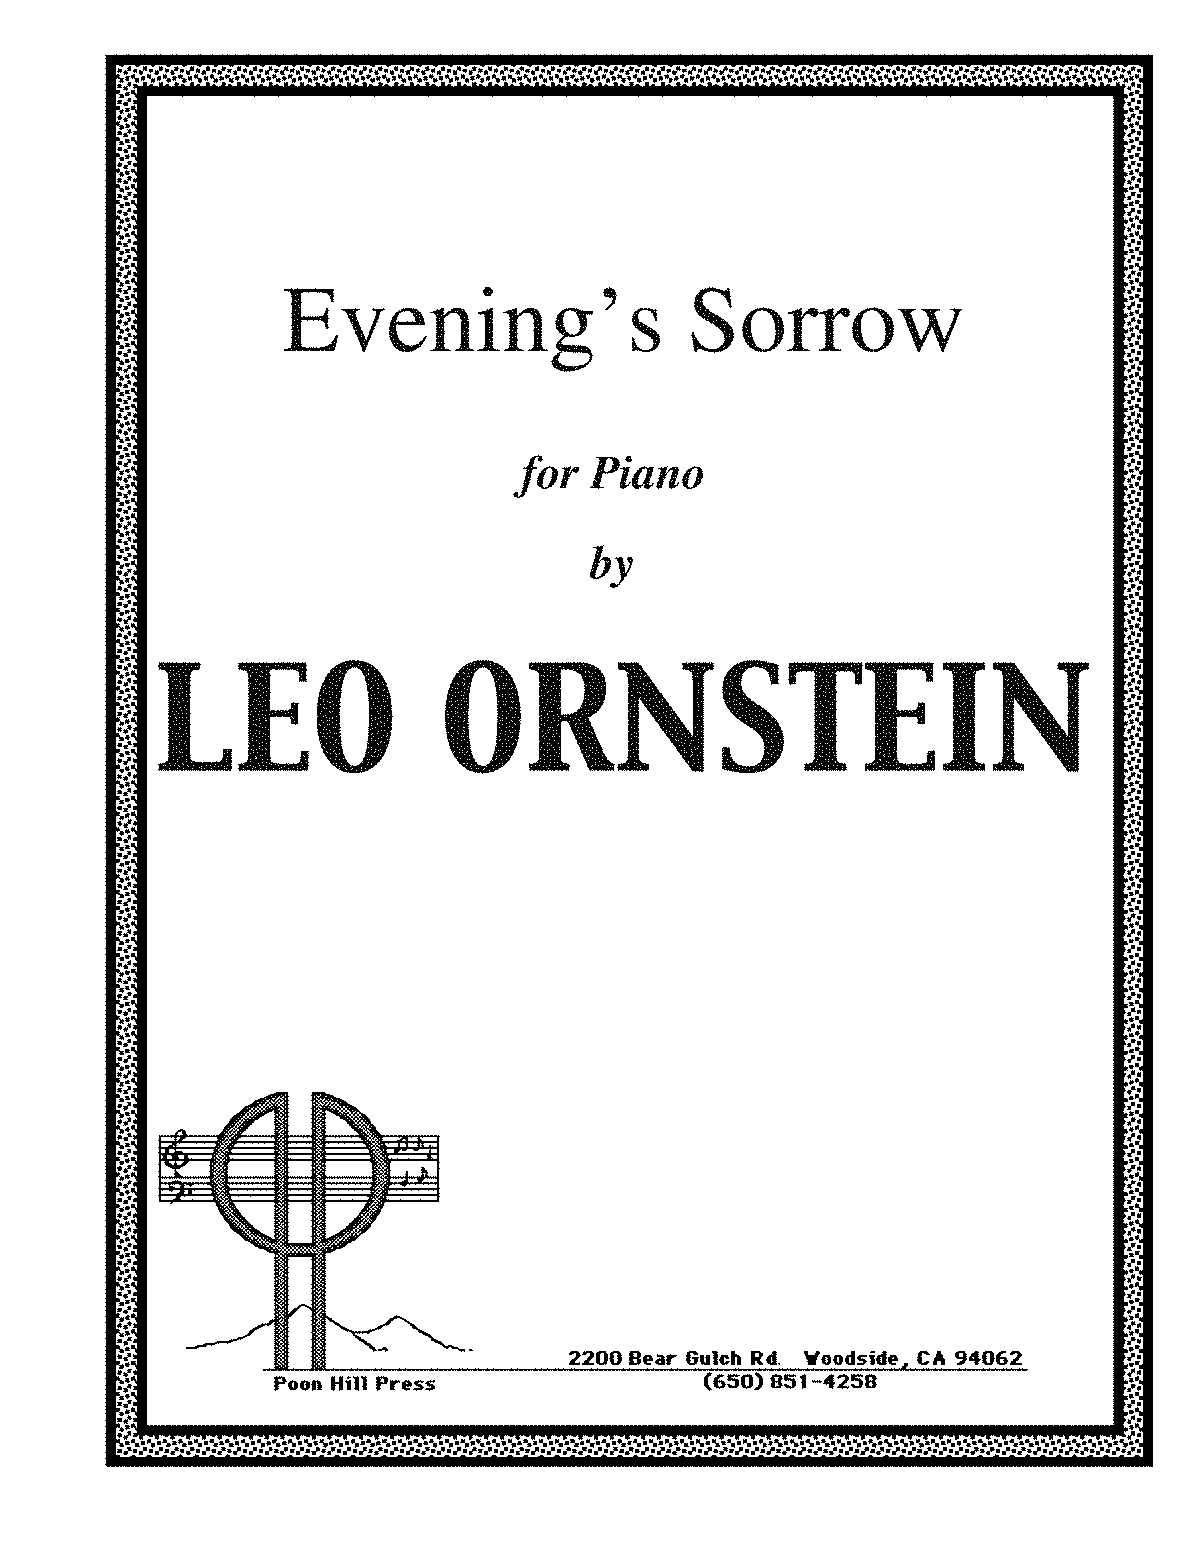 S104b - Evenings Sorrow.pdf